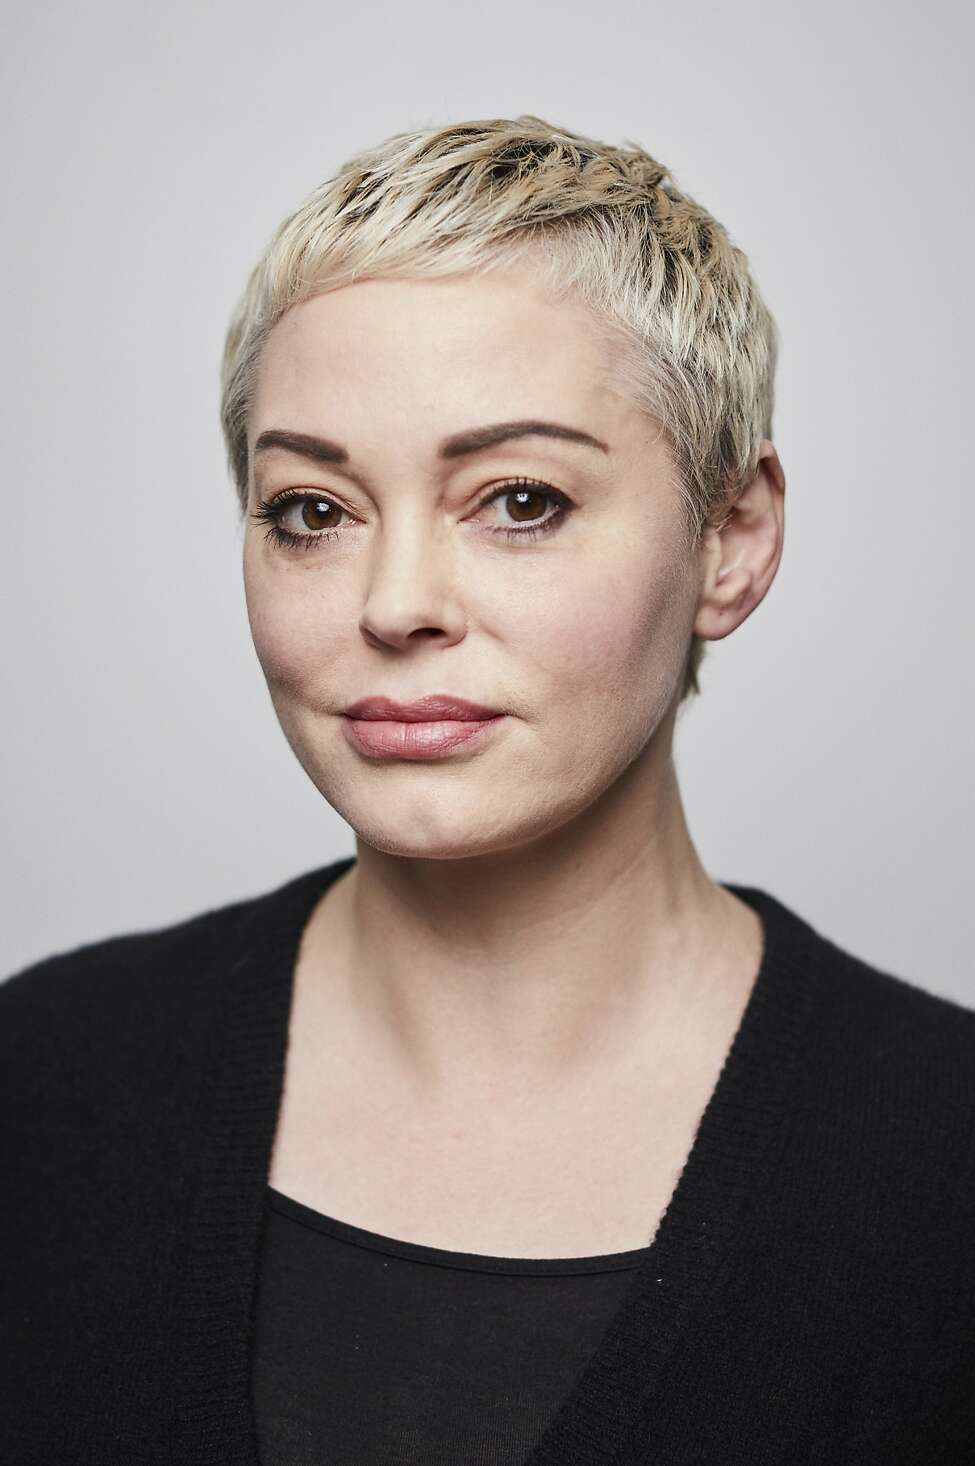 Rose McGowan poses for a portrait in New York on Friday, Jan. 3, 2020.